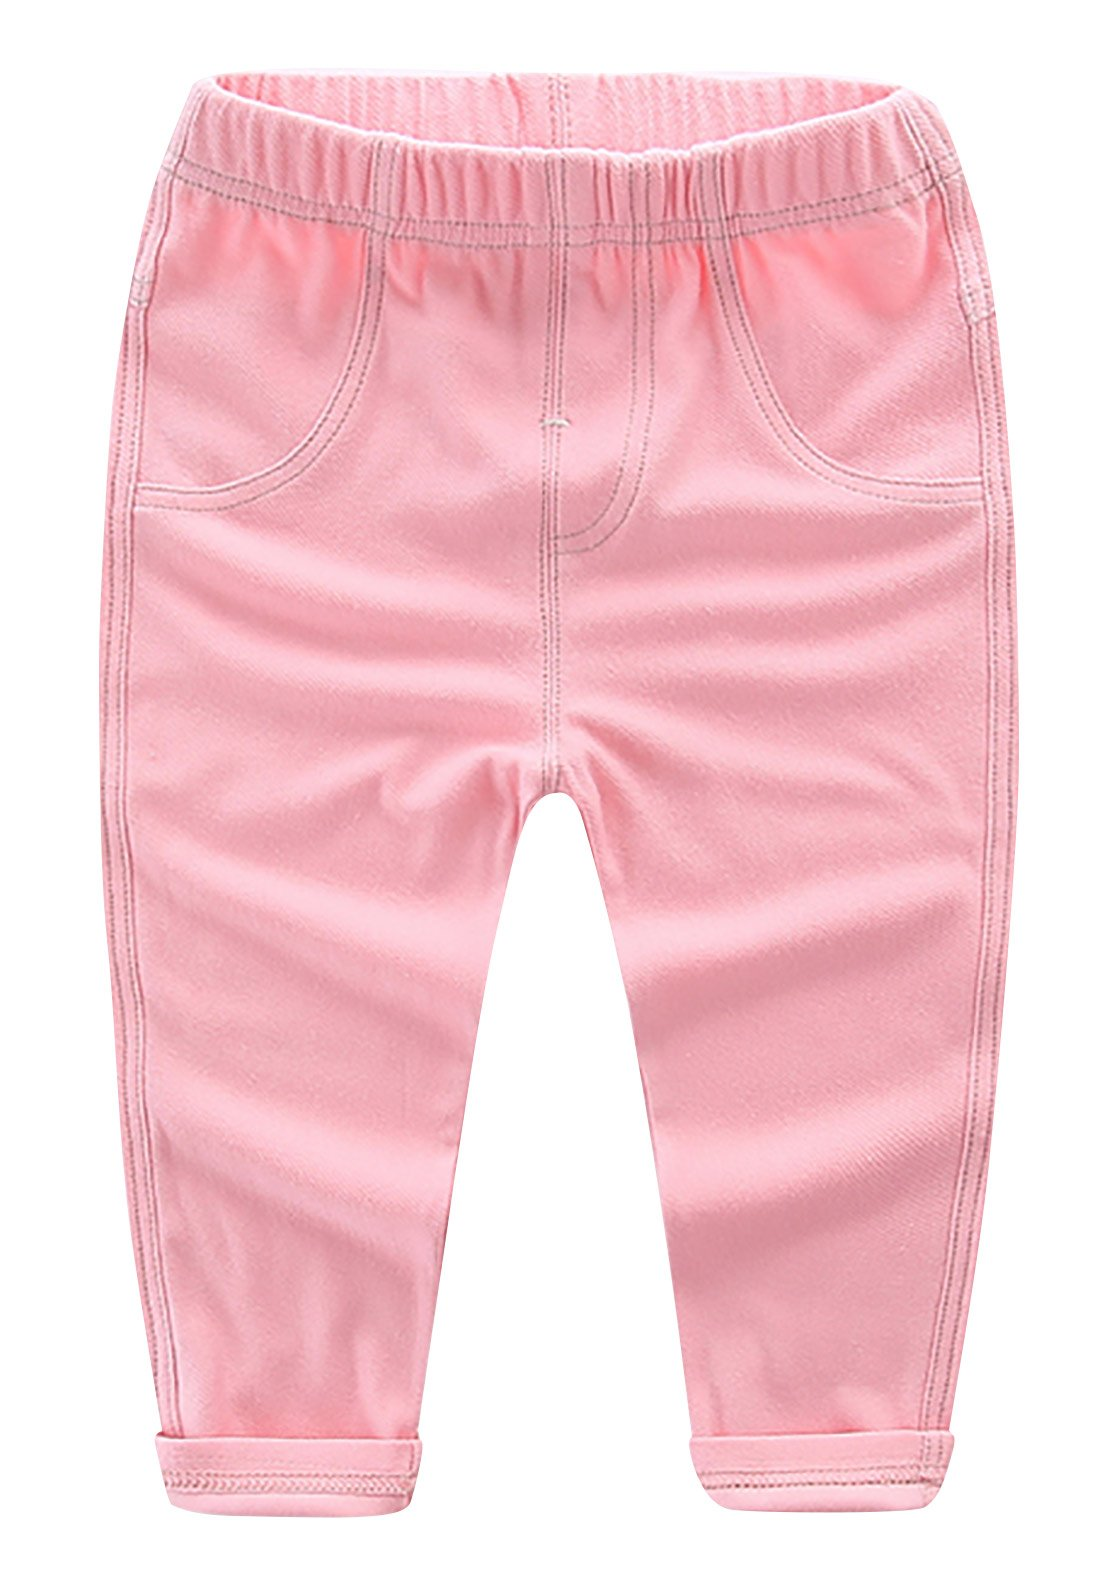 Baby Girls Denim Jeans Stretchy Leggings Pants Cotton Breathable Trousers Elastic Waist Summer Pants for Baby Boys Girls 0-6 Months Pink